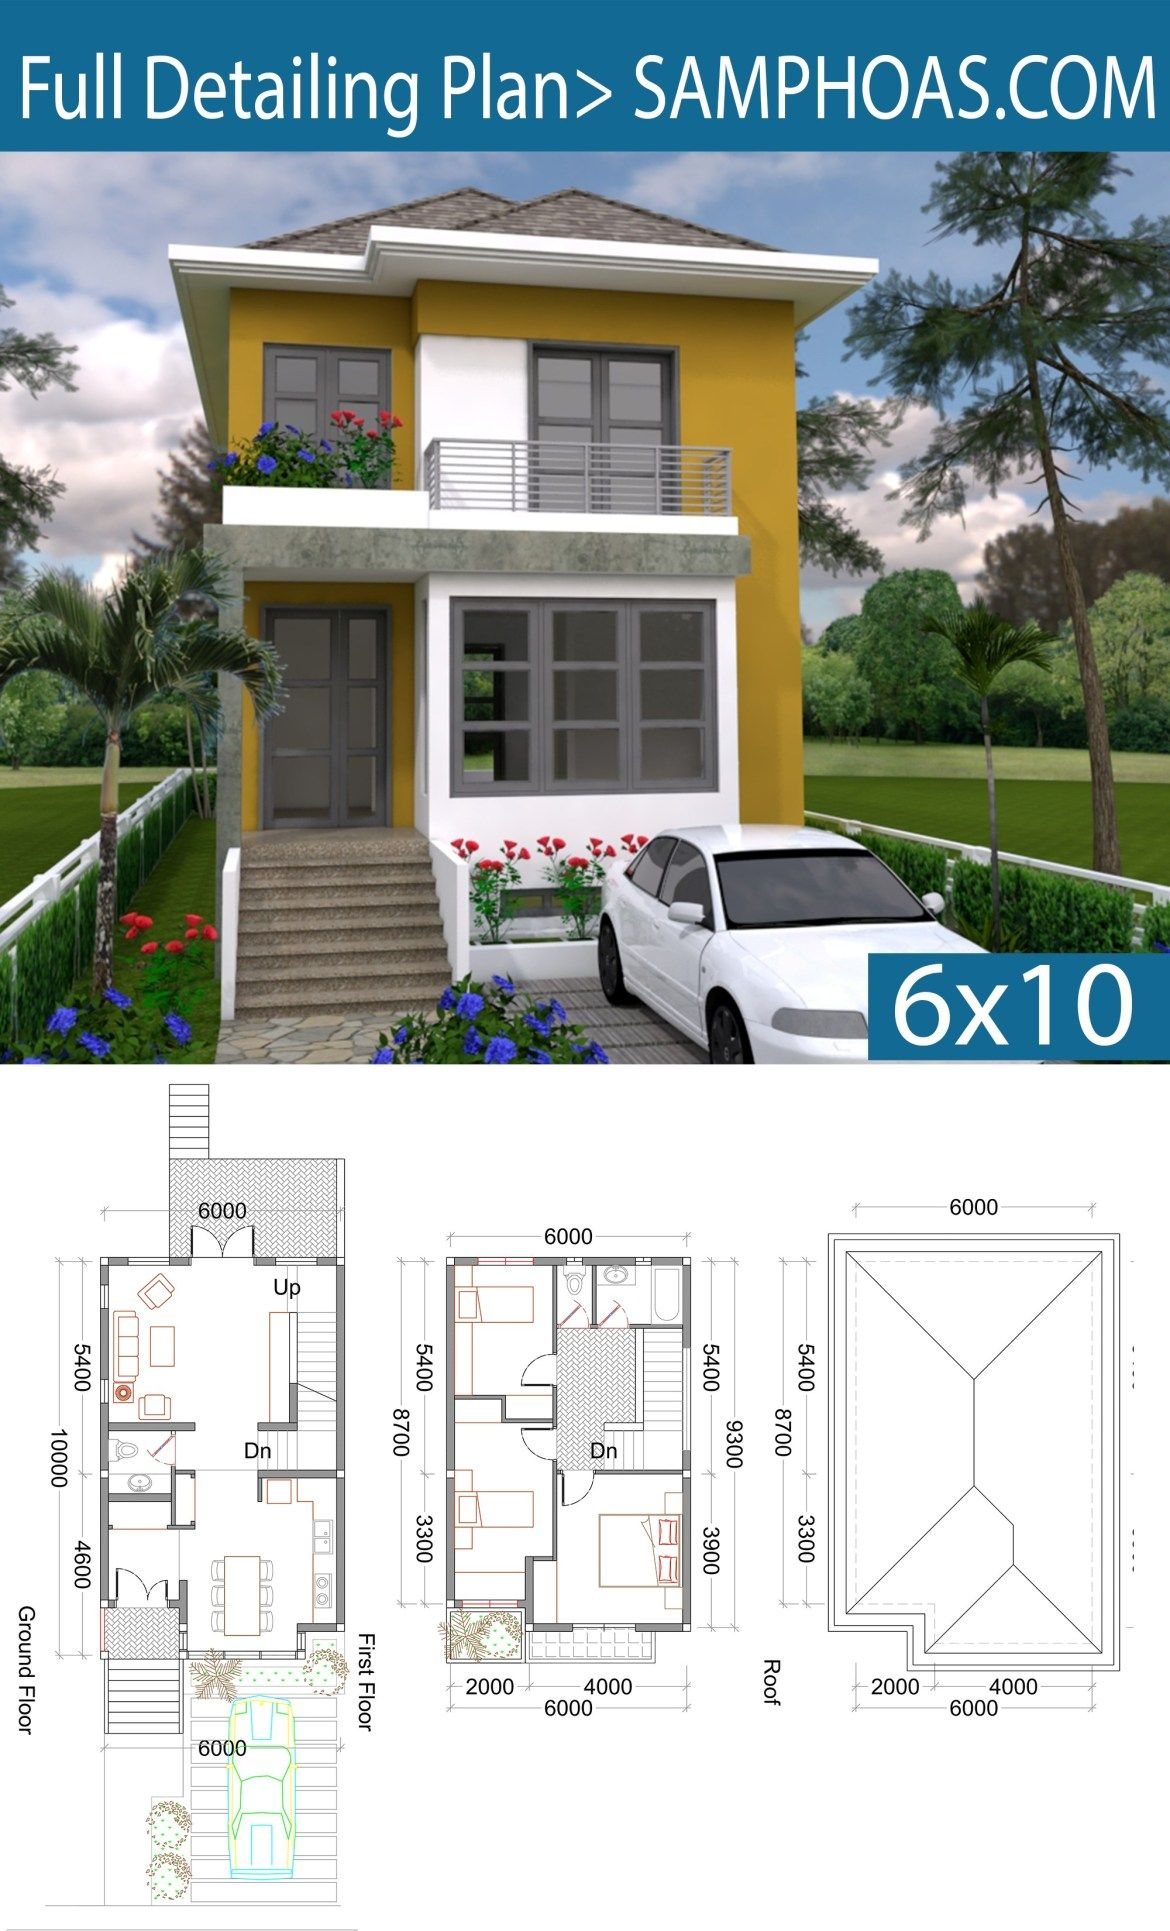 3 Bedrooms Small Home Design Plan 6x10m Samphoas Plansearch Architectural House Plans Small House Design Modern House Design